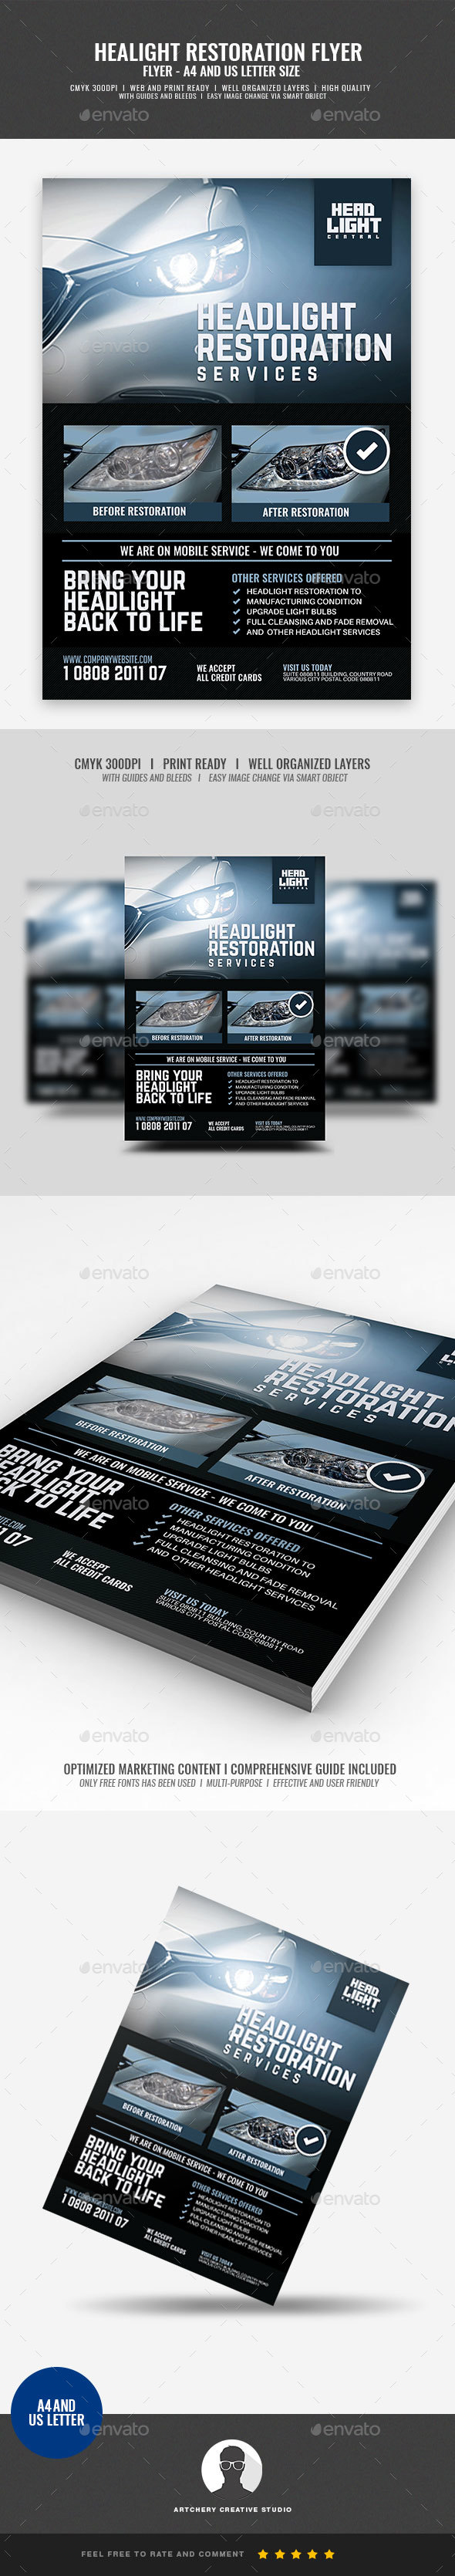 Headlight Restoration Services - Corporate Flyers